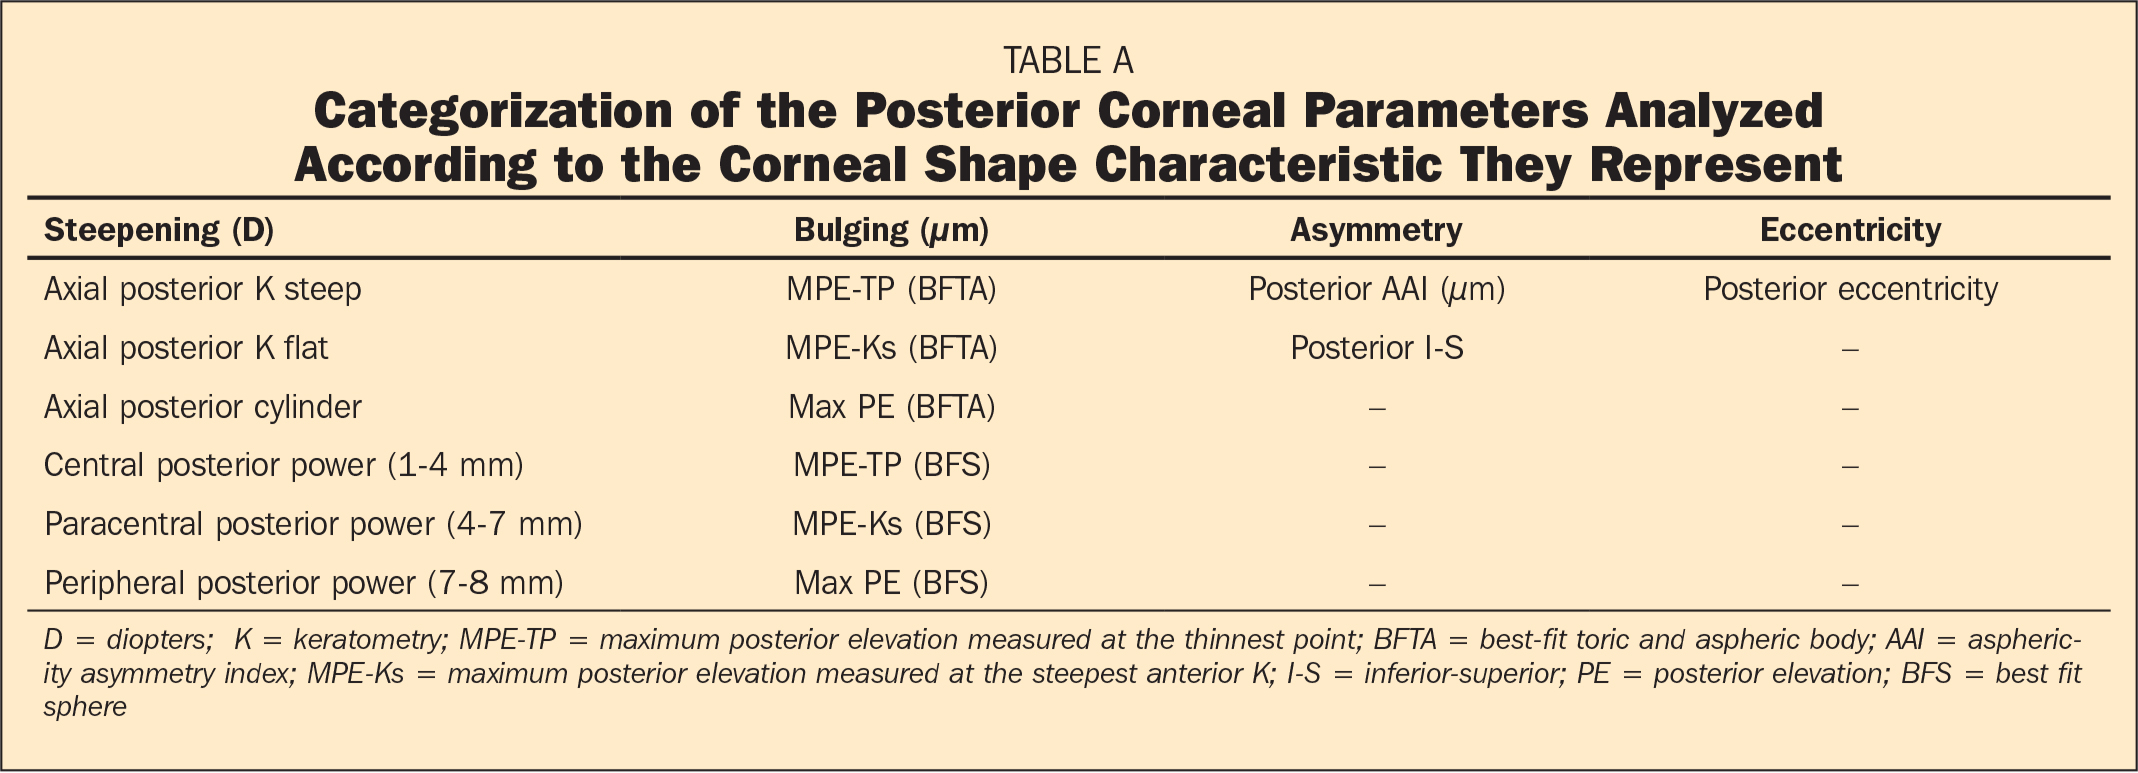 Categorization of the Posterior Corneal Parameters Analyzed According to the Corneal Shape Characteristic They Represent